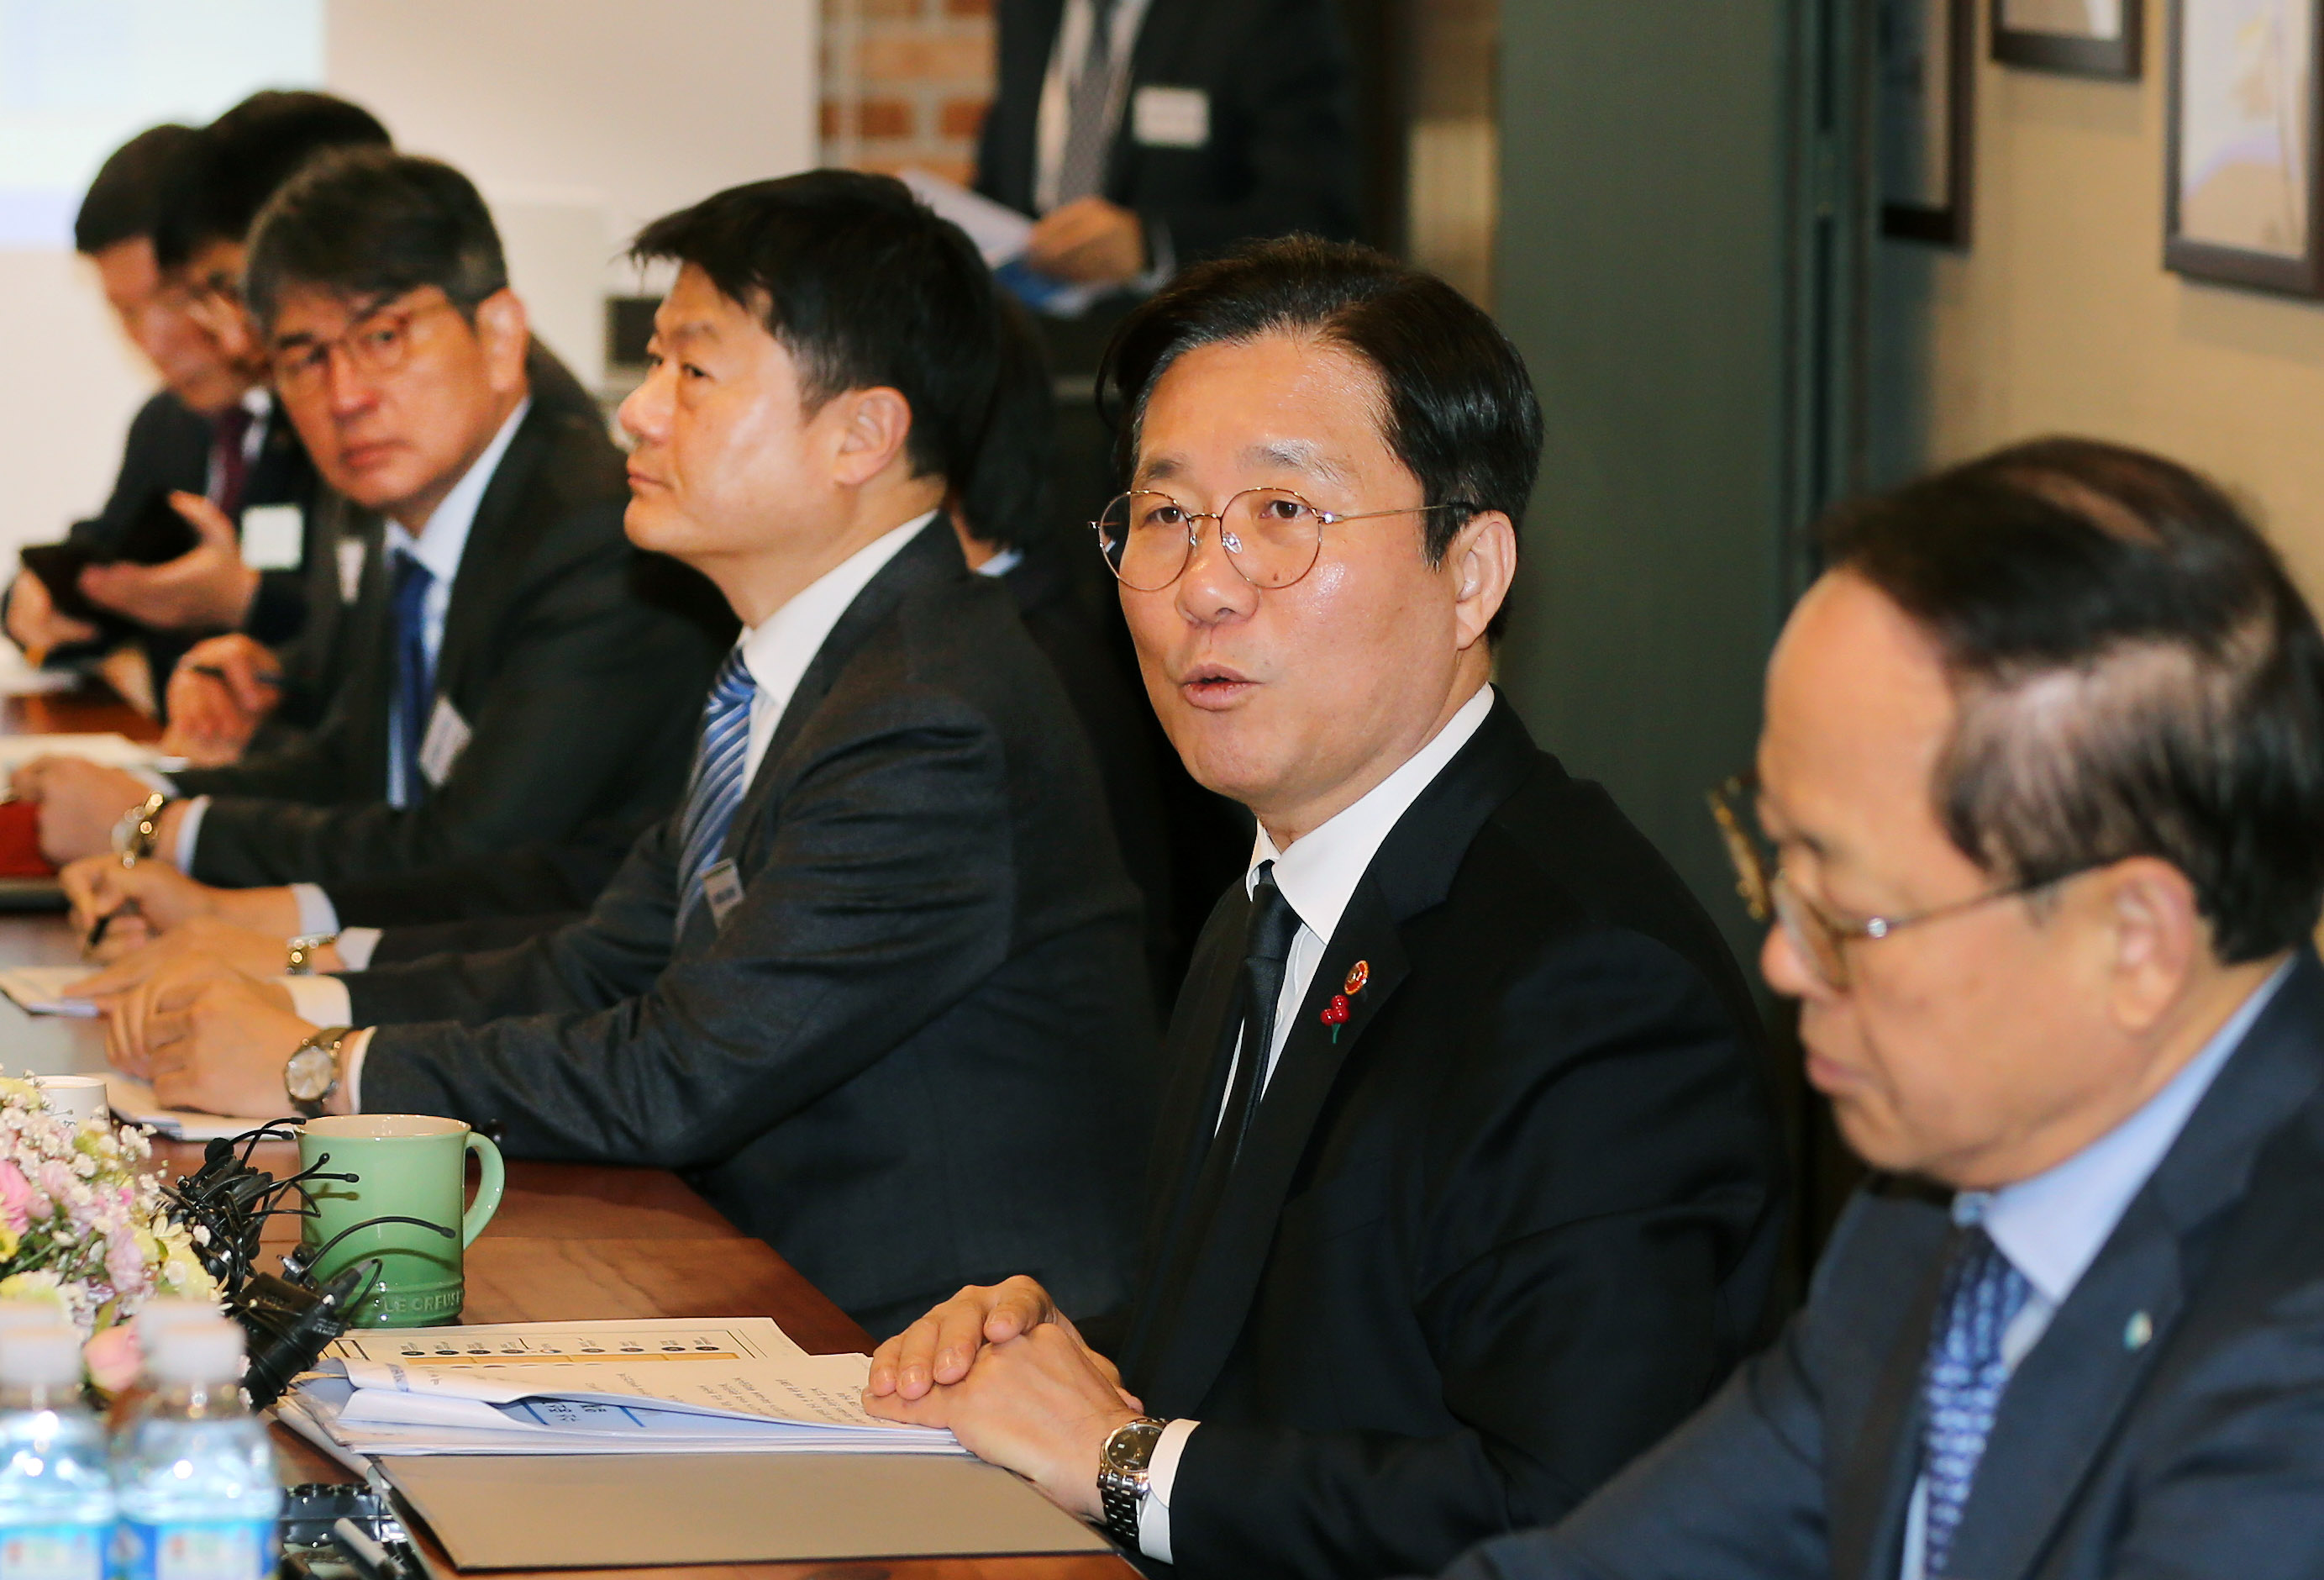 Minister Sung visits Power to Gas solution provider Image 0